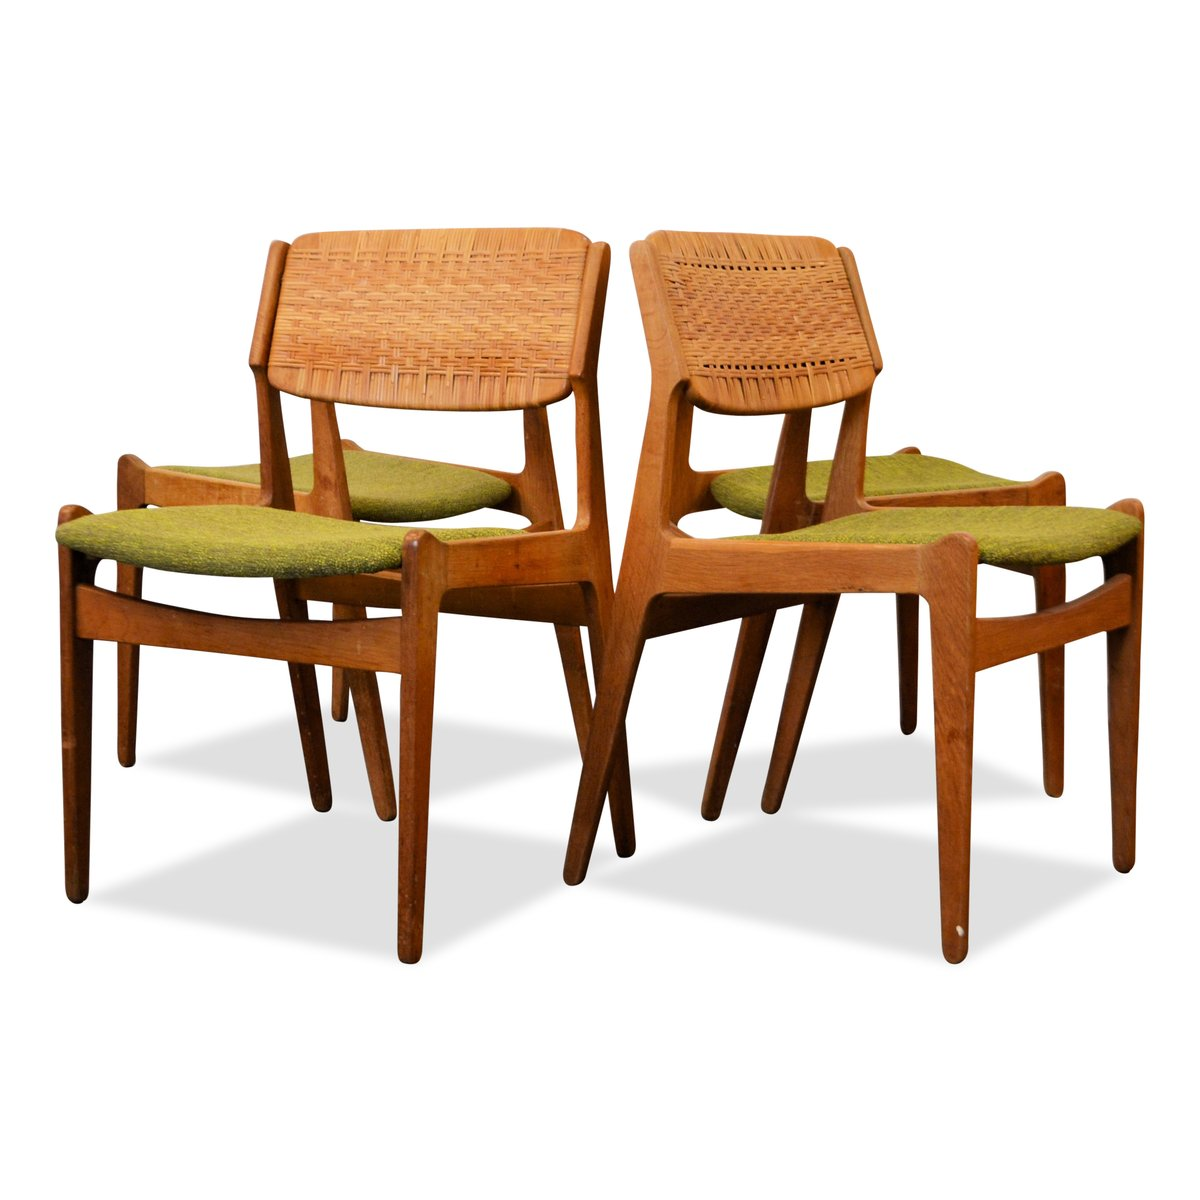 Danish Green Rattan Dining Chairs By Erik Buch Set Of 4 For Sale At Pamono